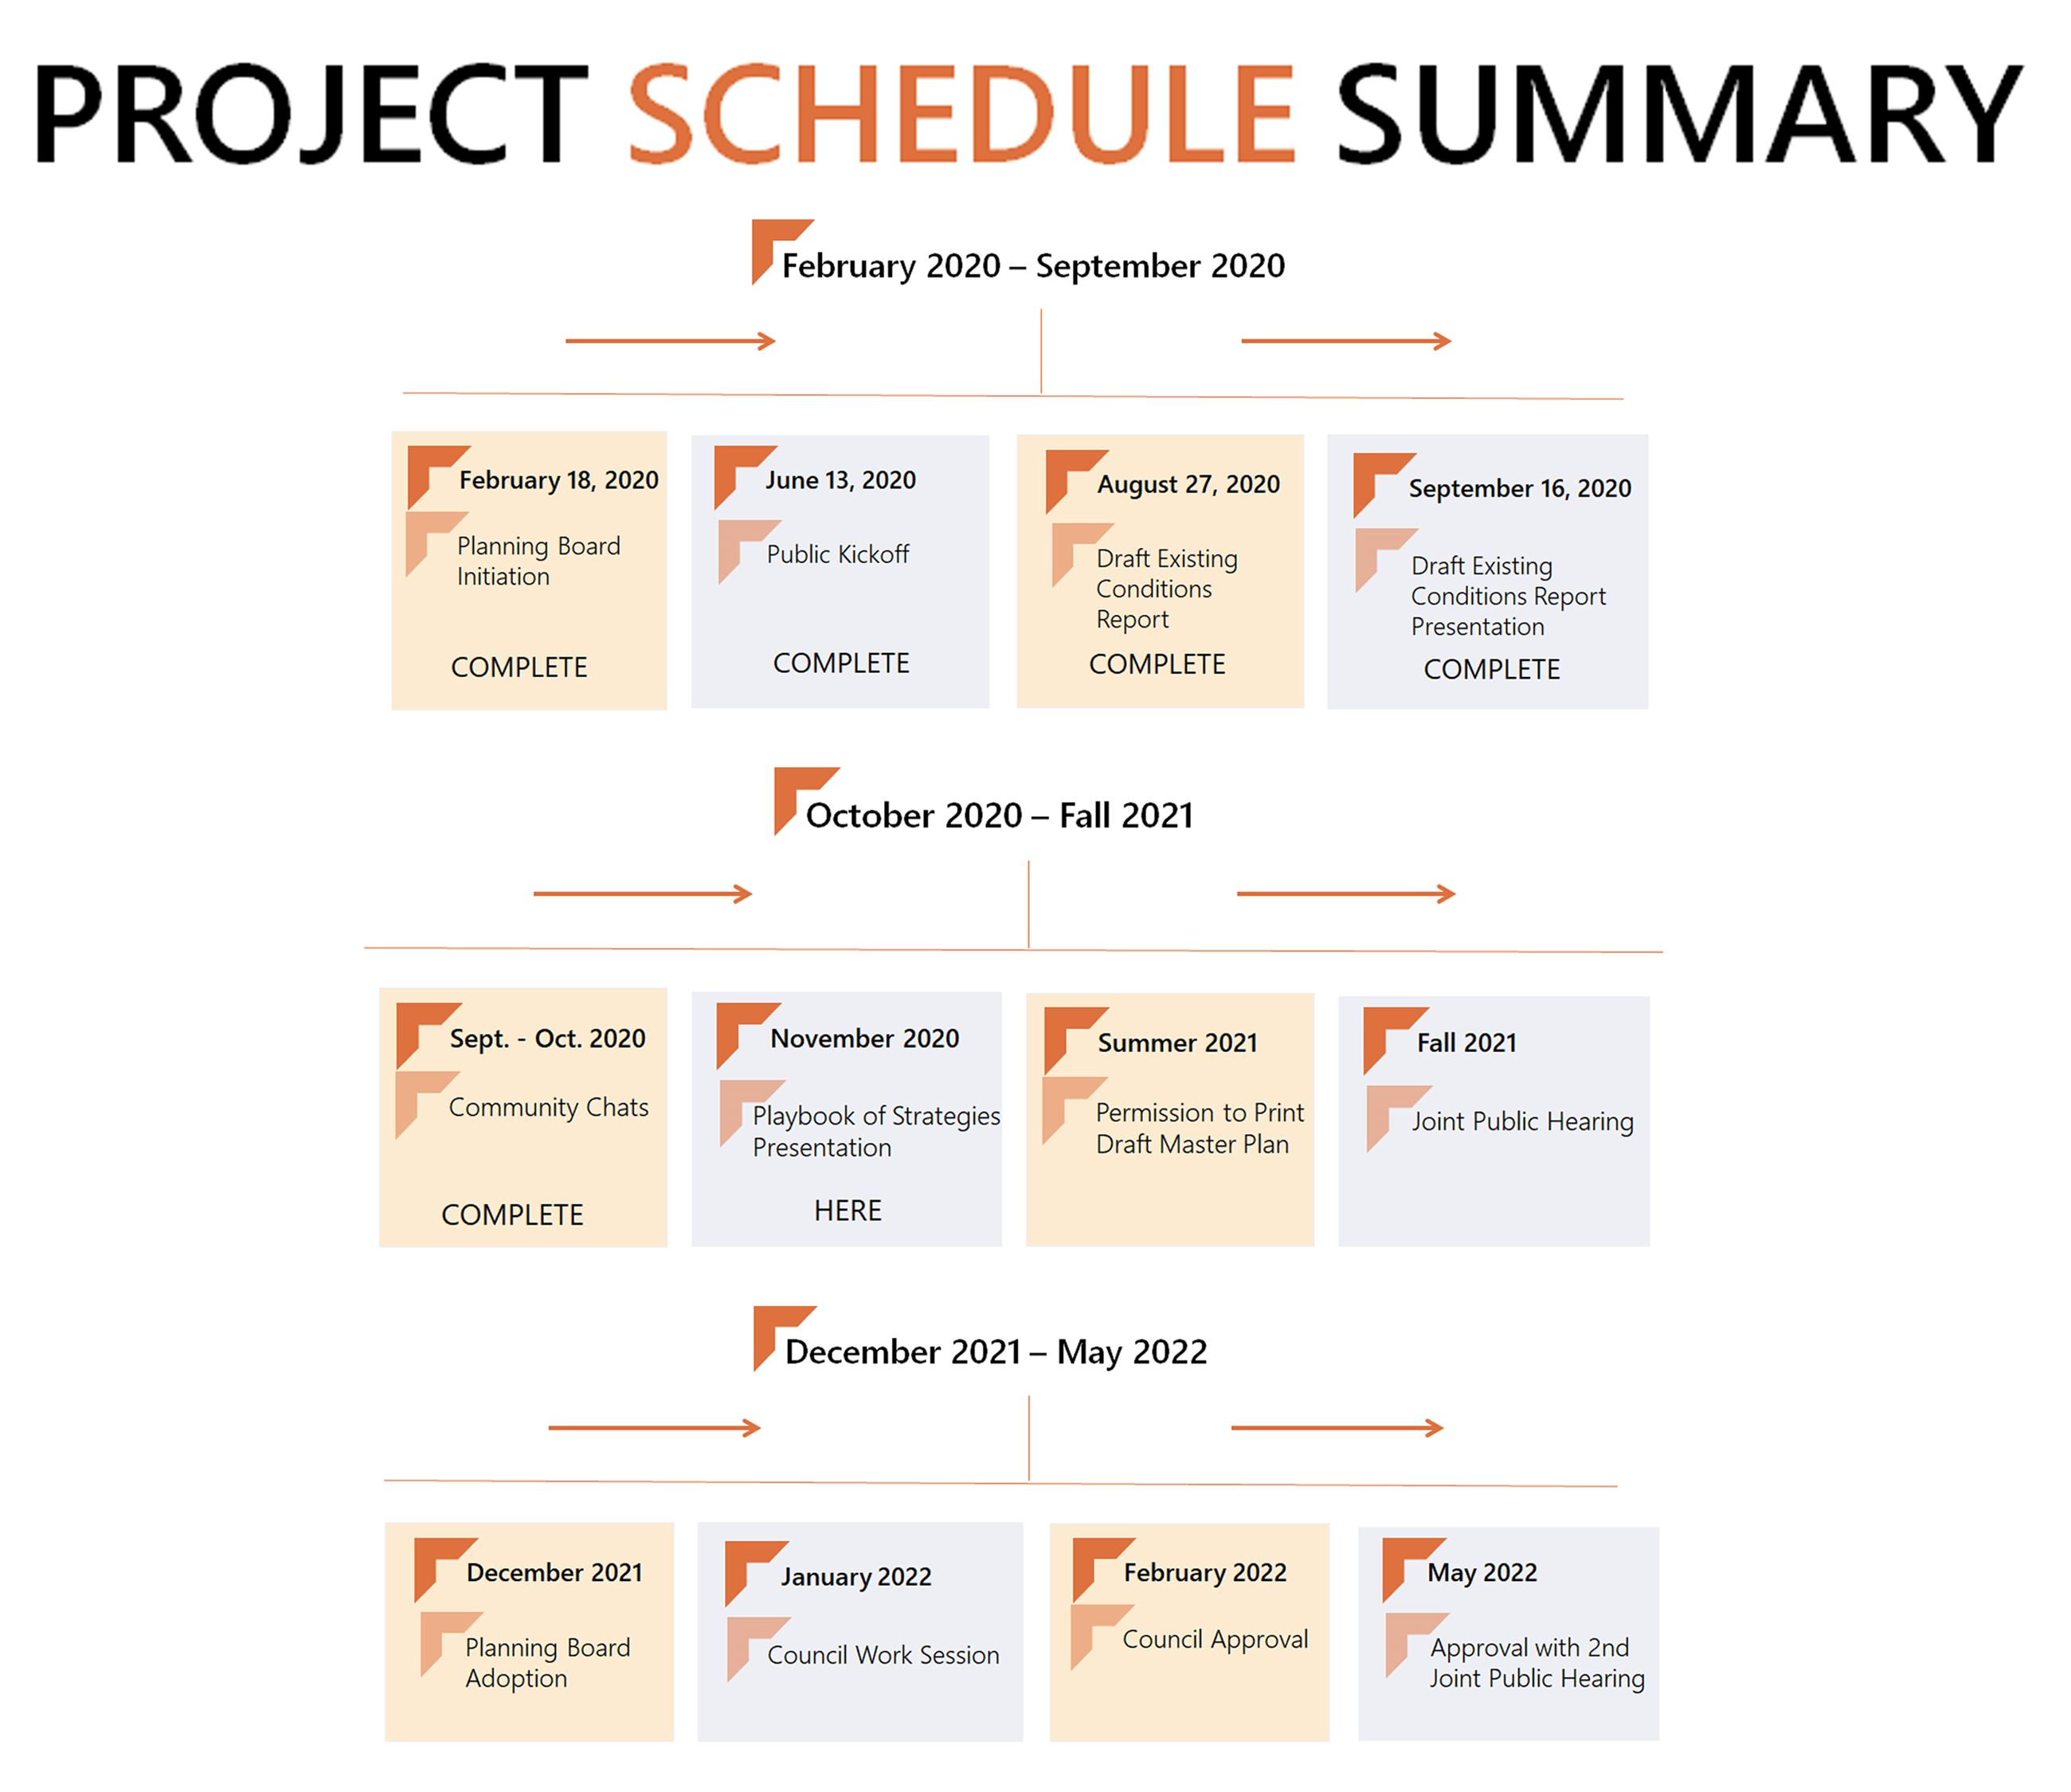 Project Schedule Summary_updated 10232020